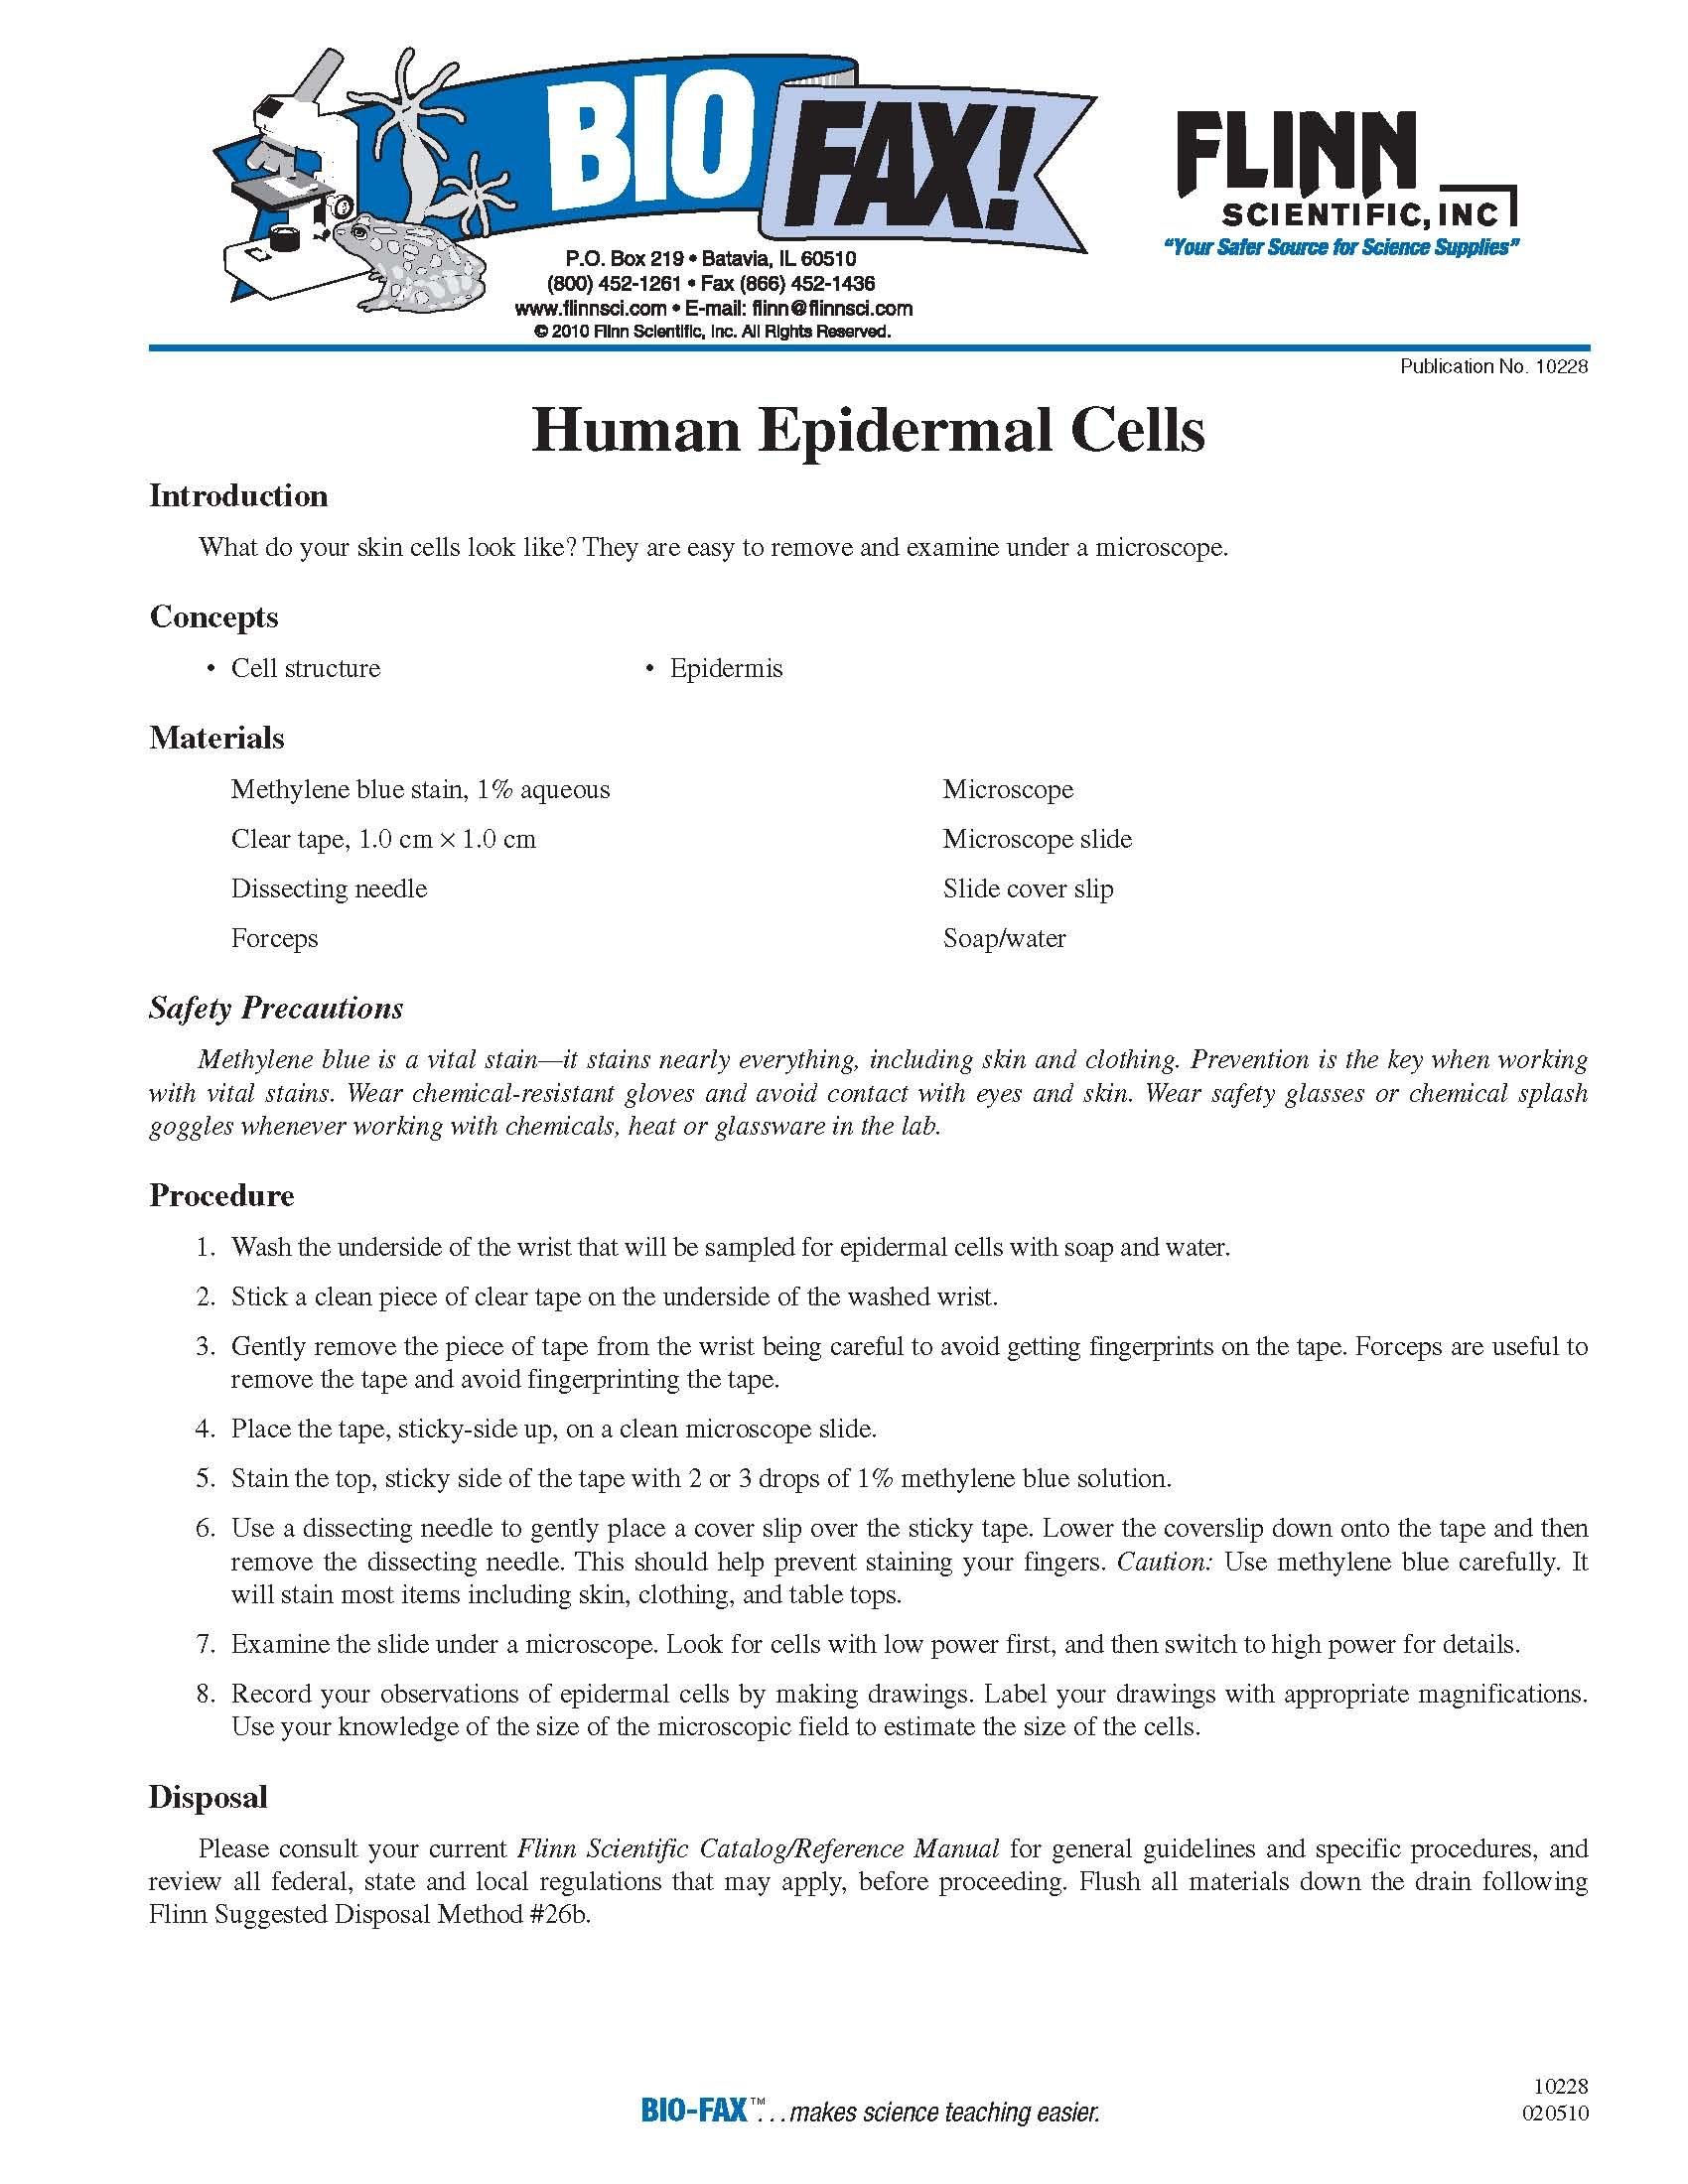 view human cells under the microscope with this free lesson from rh pinterest ca Flinn Scientific Catalog 2009 flinn scientific catalog/reference manual